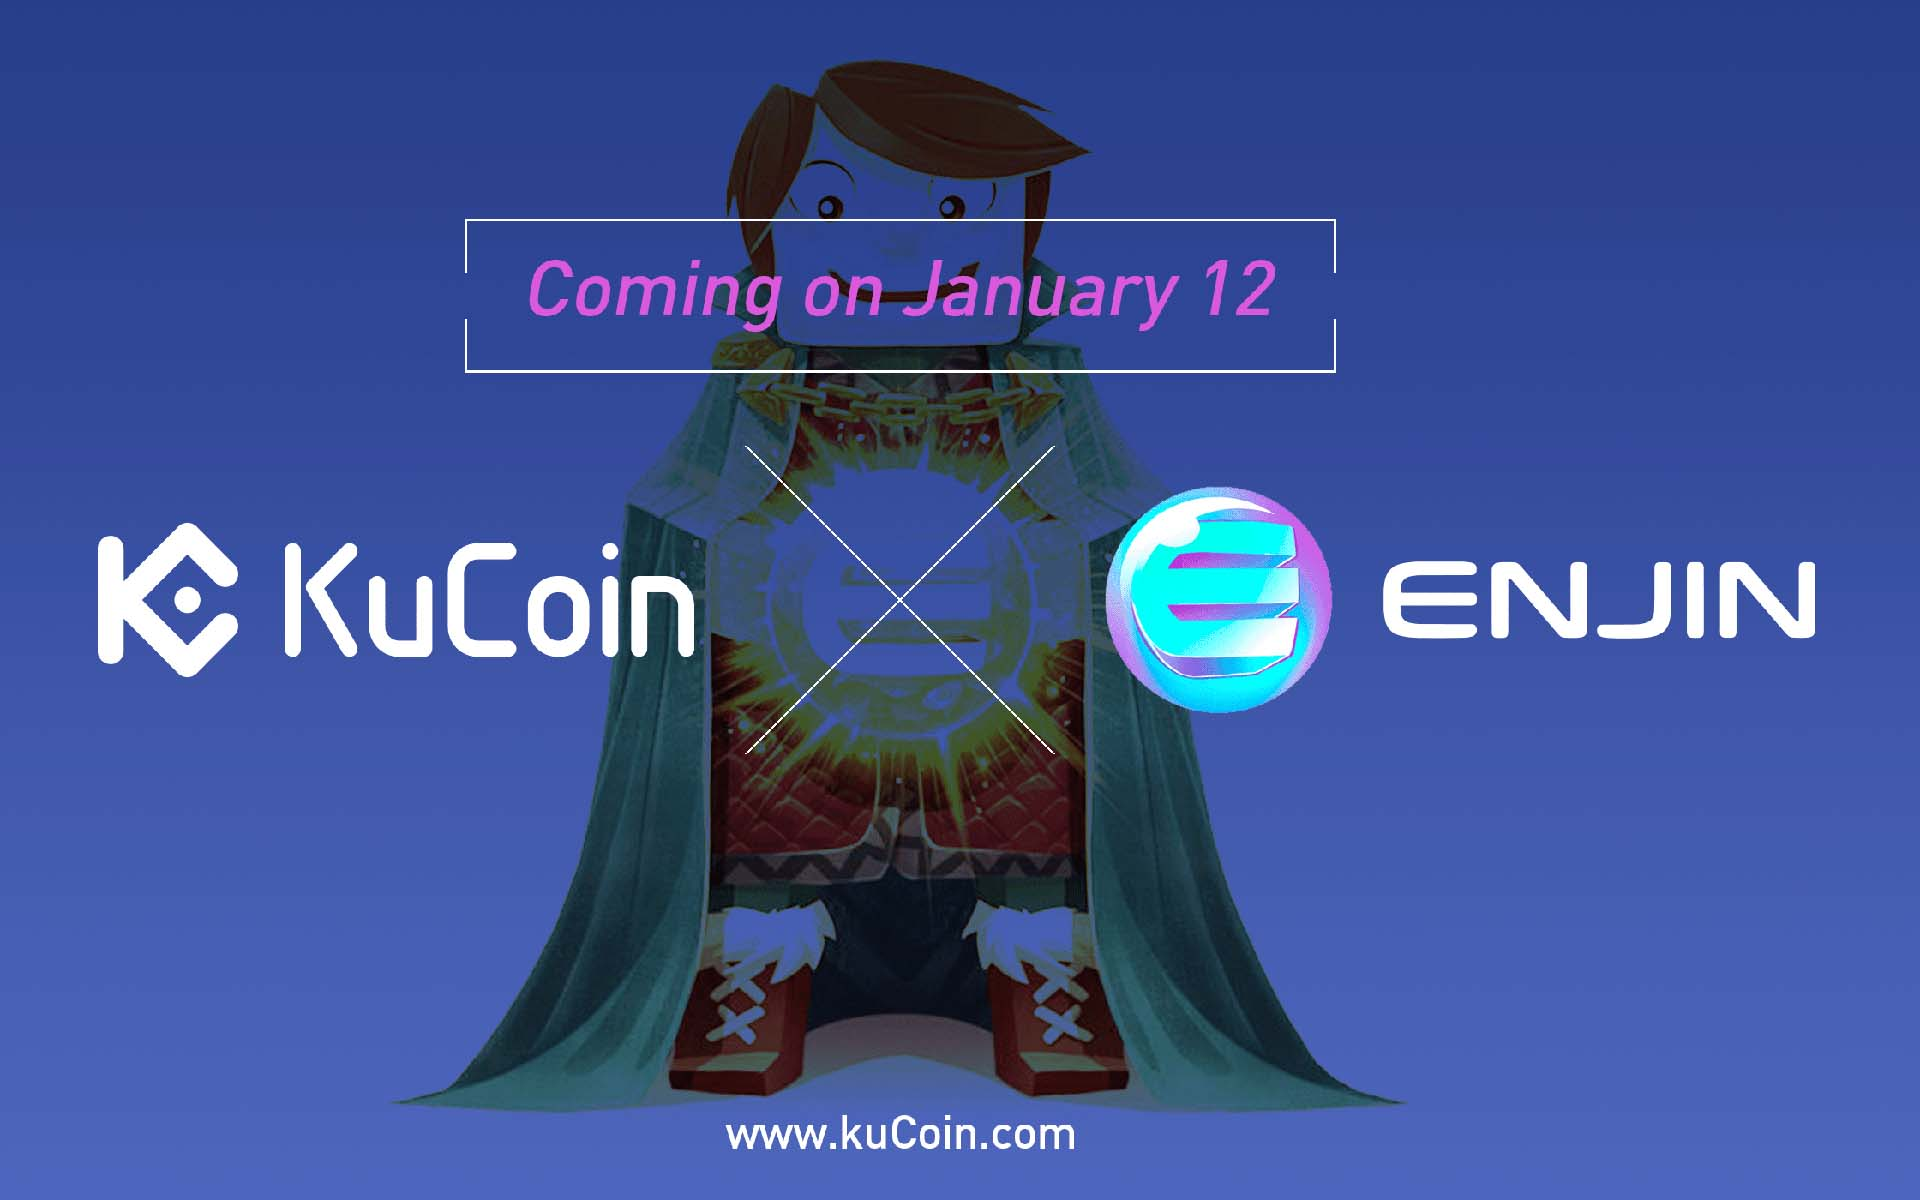 Enjin (ENJ) Now Trading on KuCoin - ENJ/BTC and ENJ/ETH